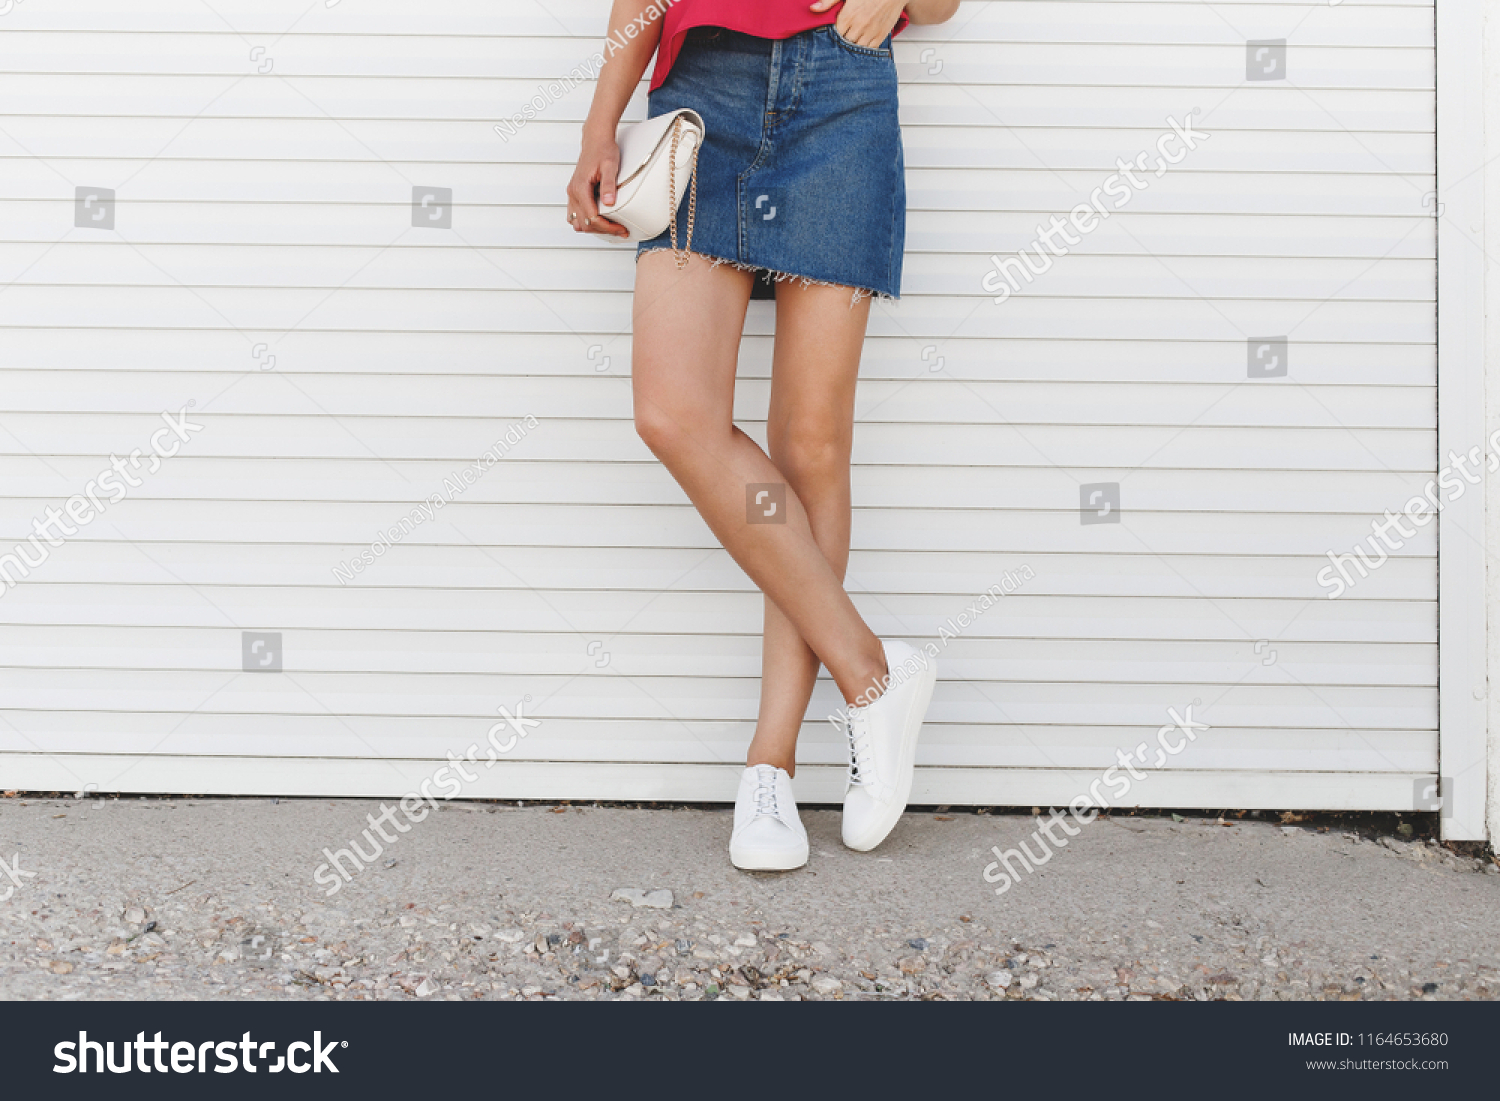 b8edb6a488623 Details of trendy casual summer or spring outfit. Woman wearing denim mini  skirt, pink